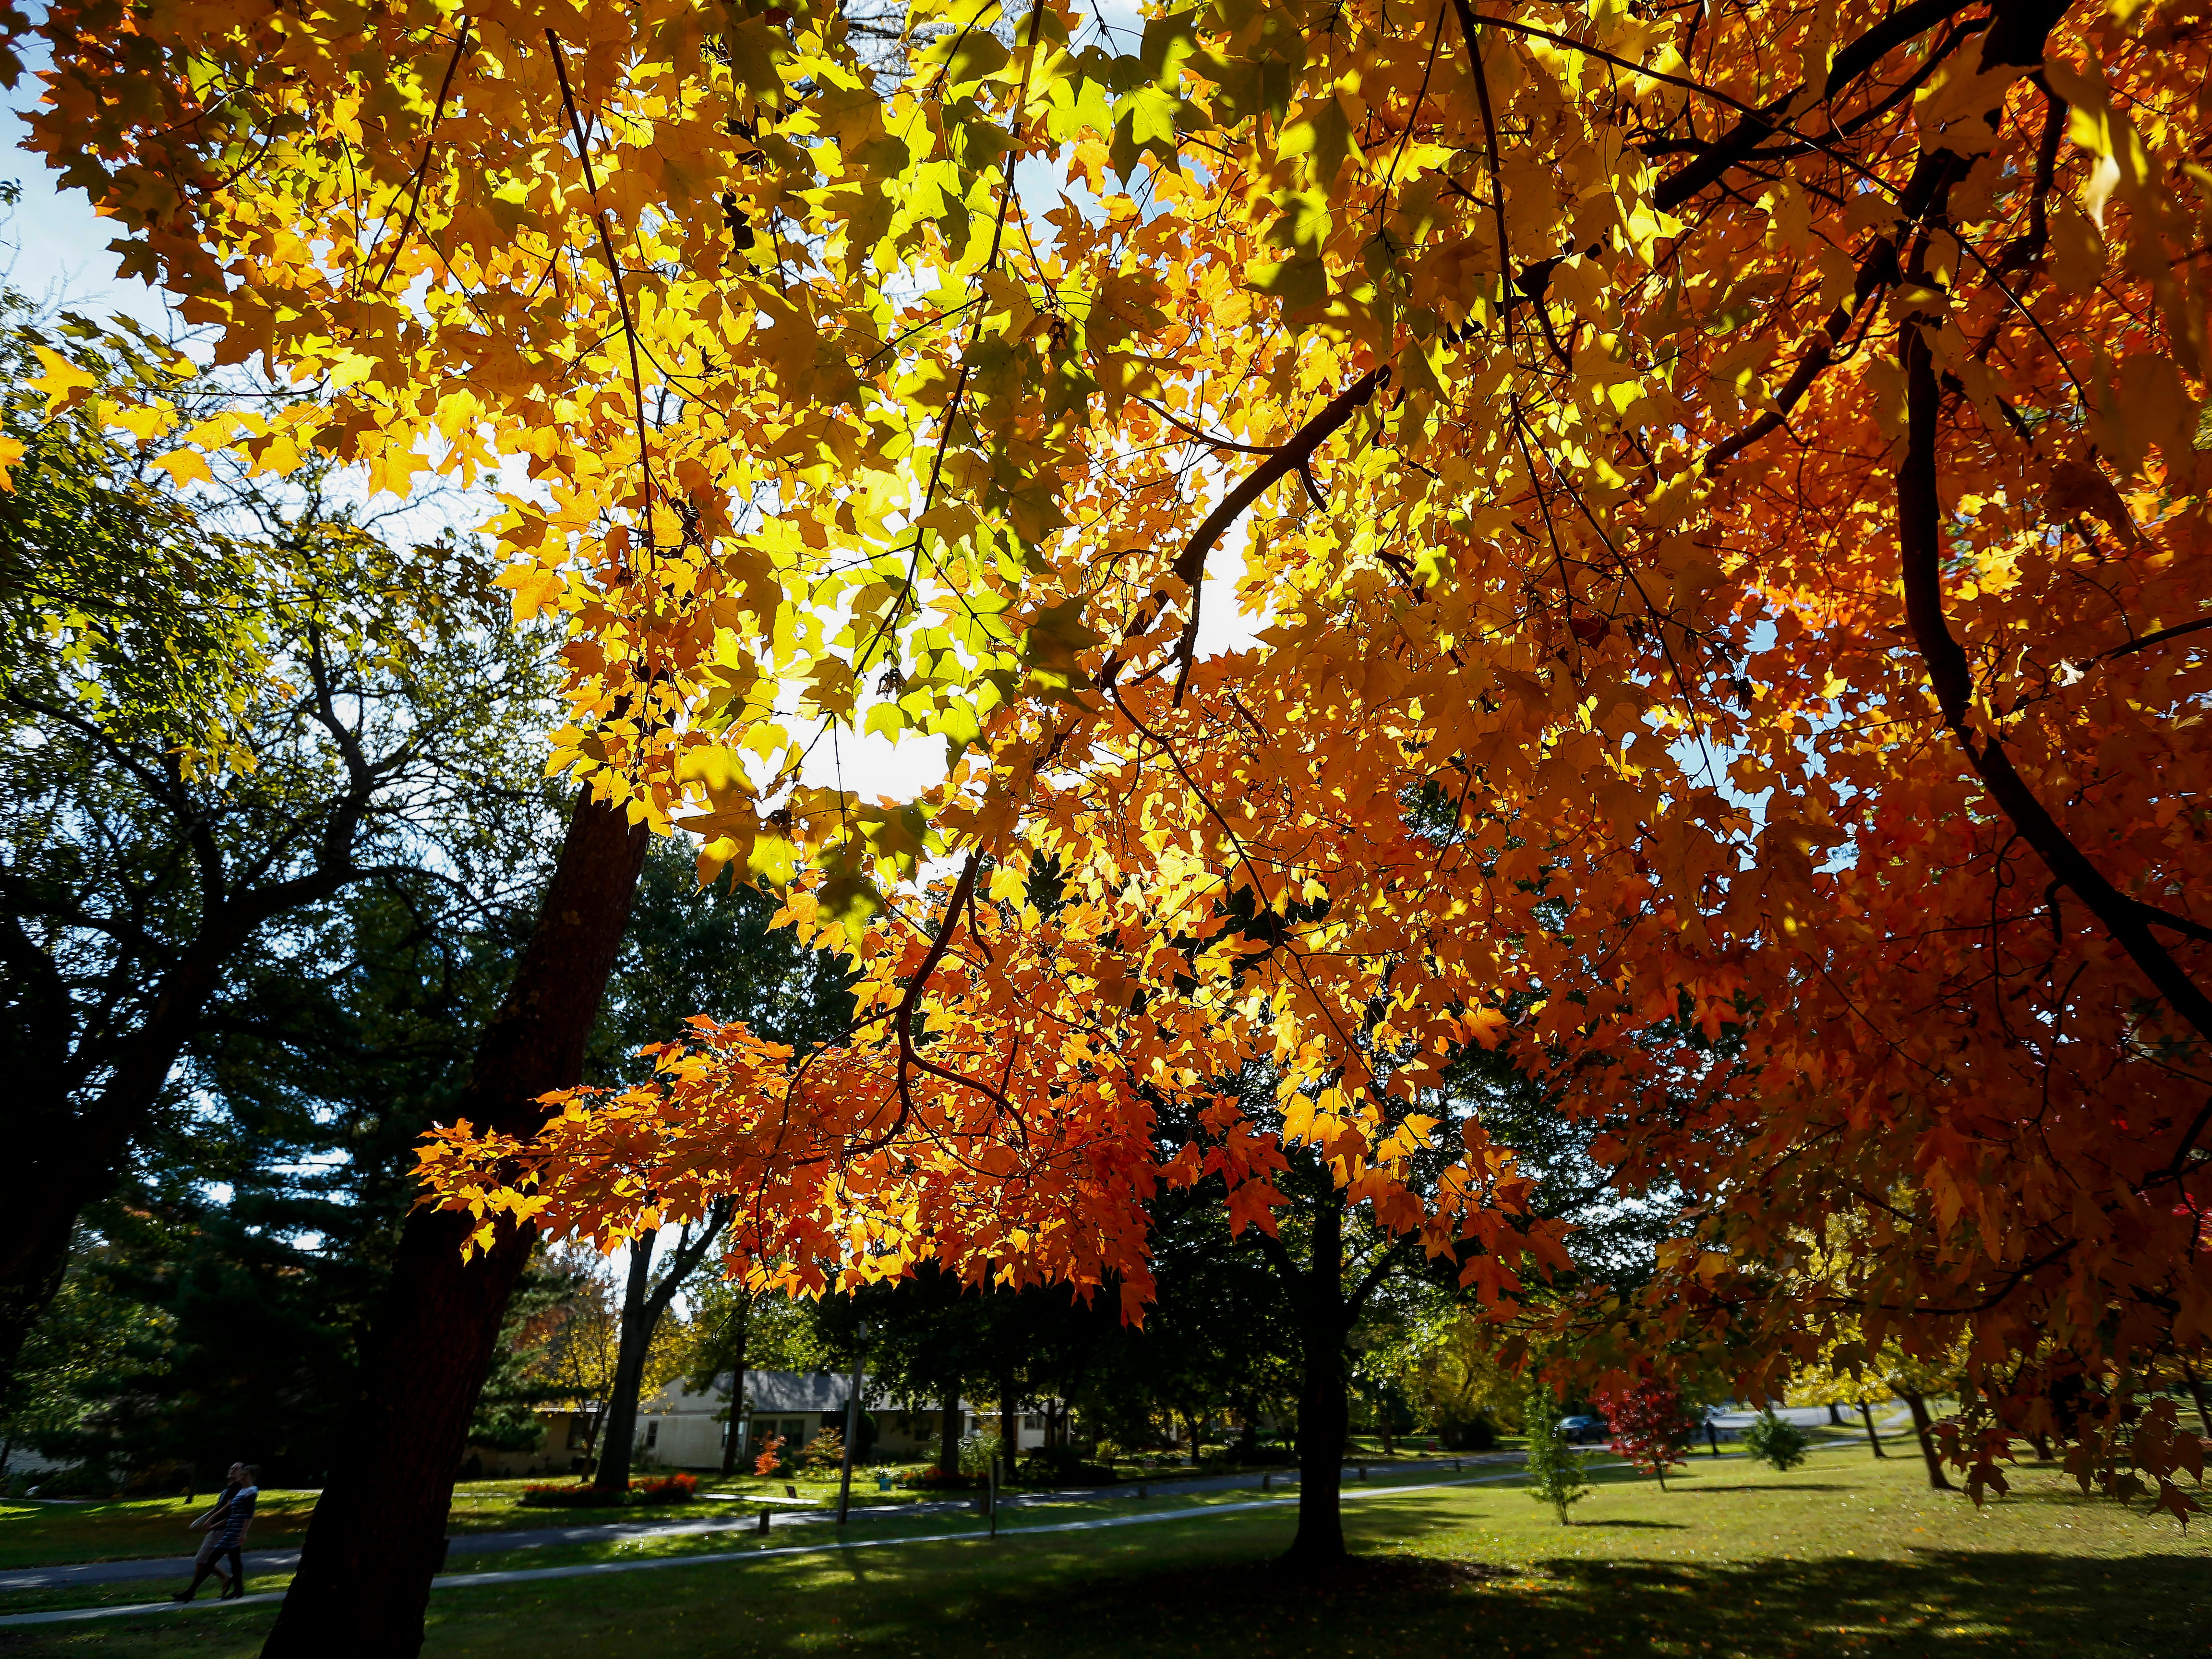 Some of the trees at Phelps Grove Park are glowing with color on Tuesday, Oct. 30, 2018.